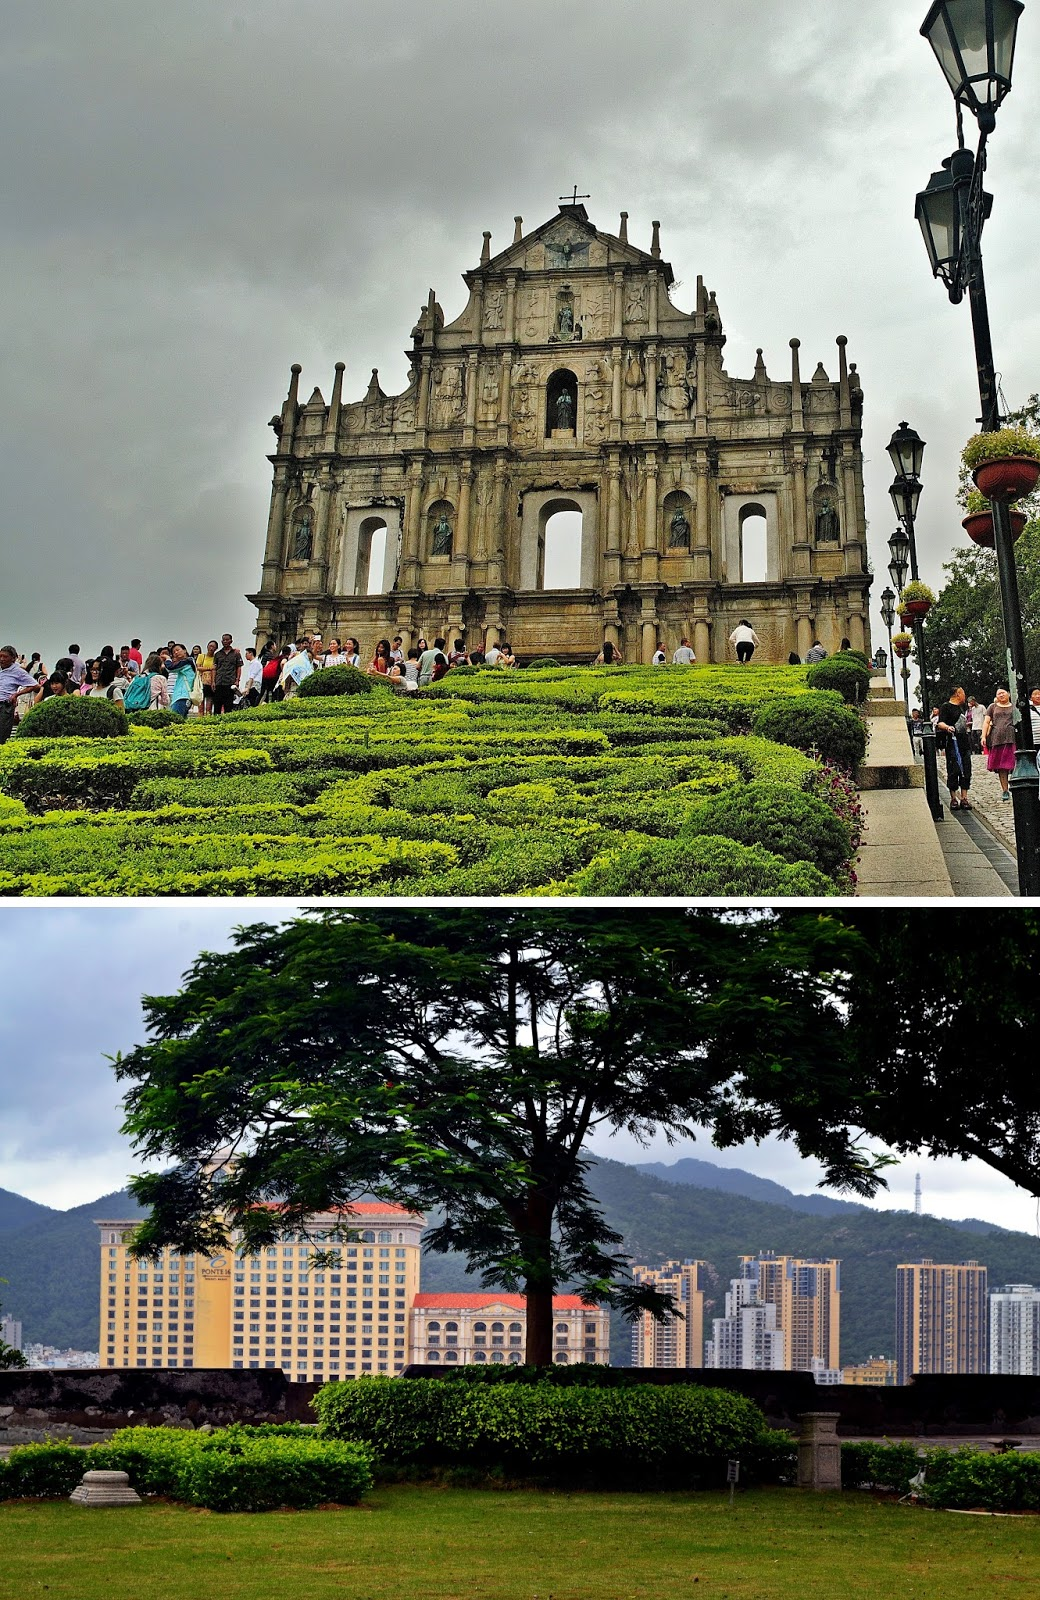 Macau Day Trip from Hong Kong